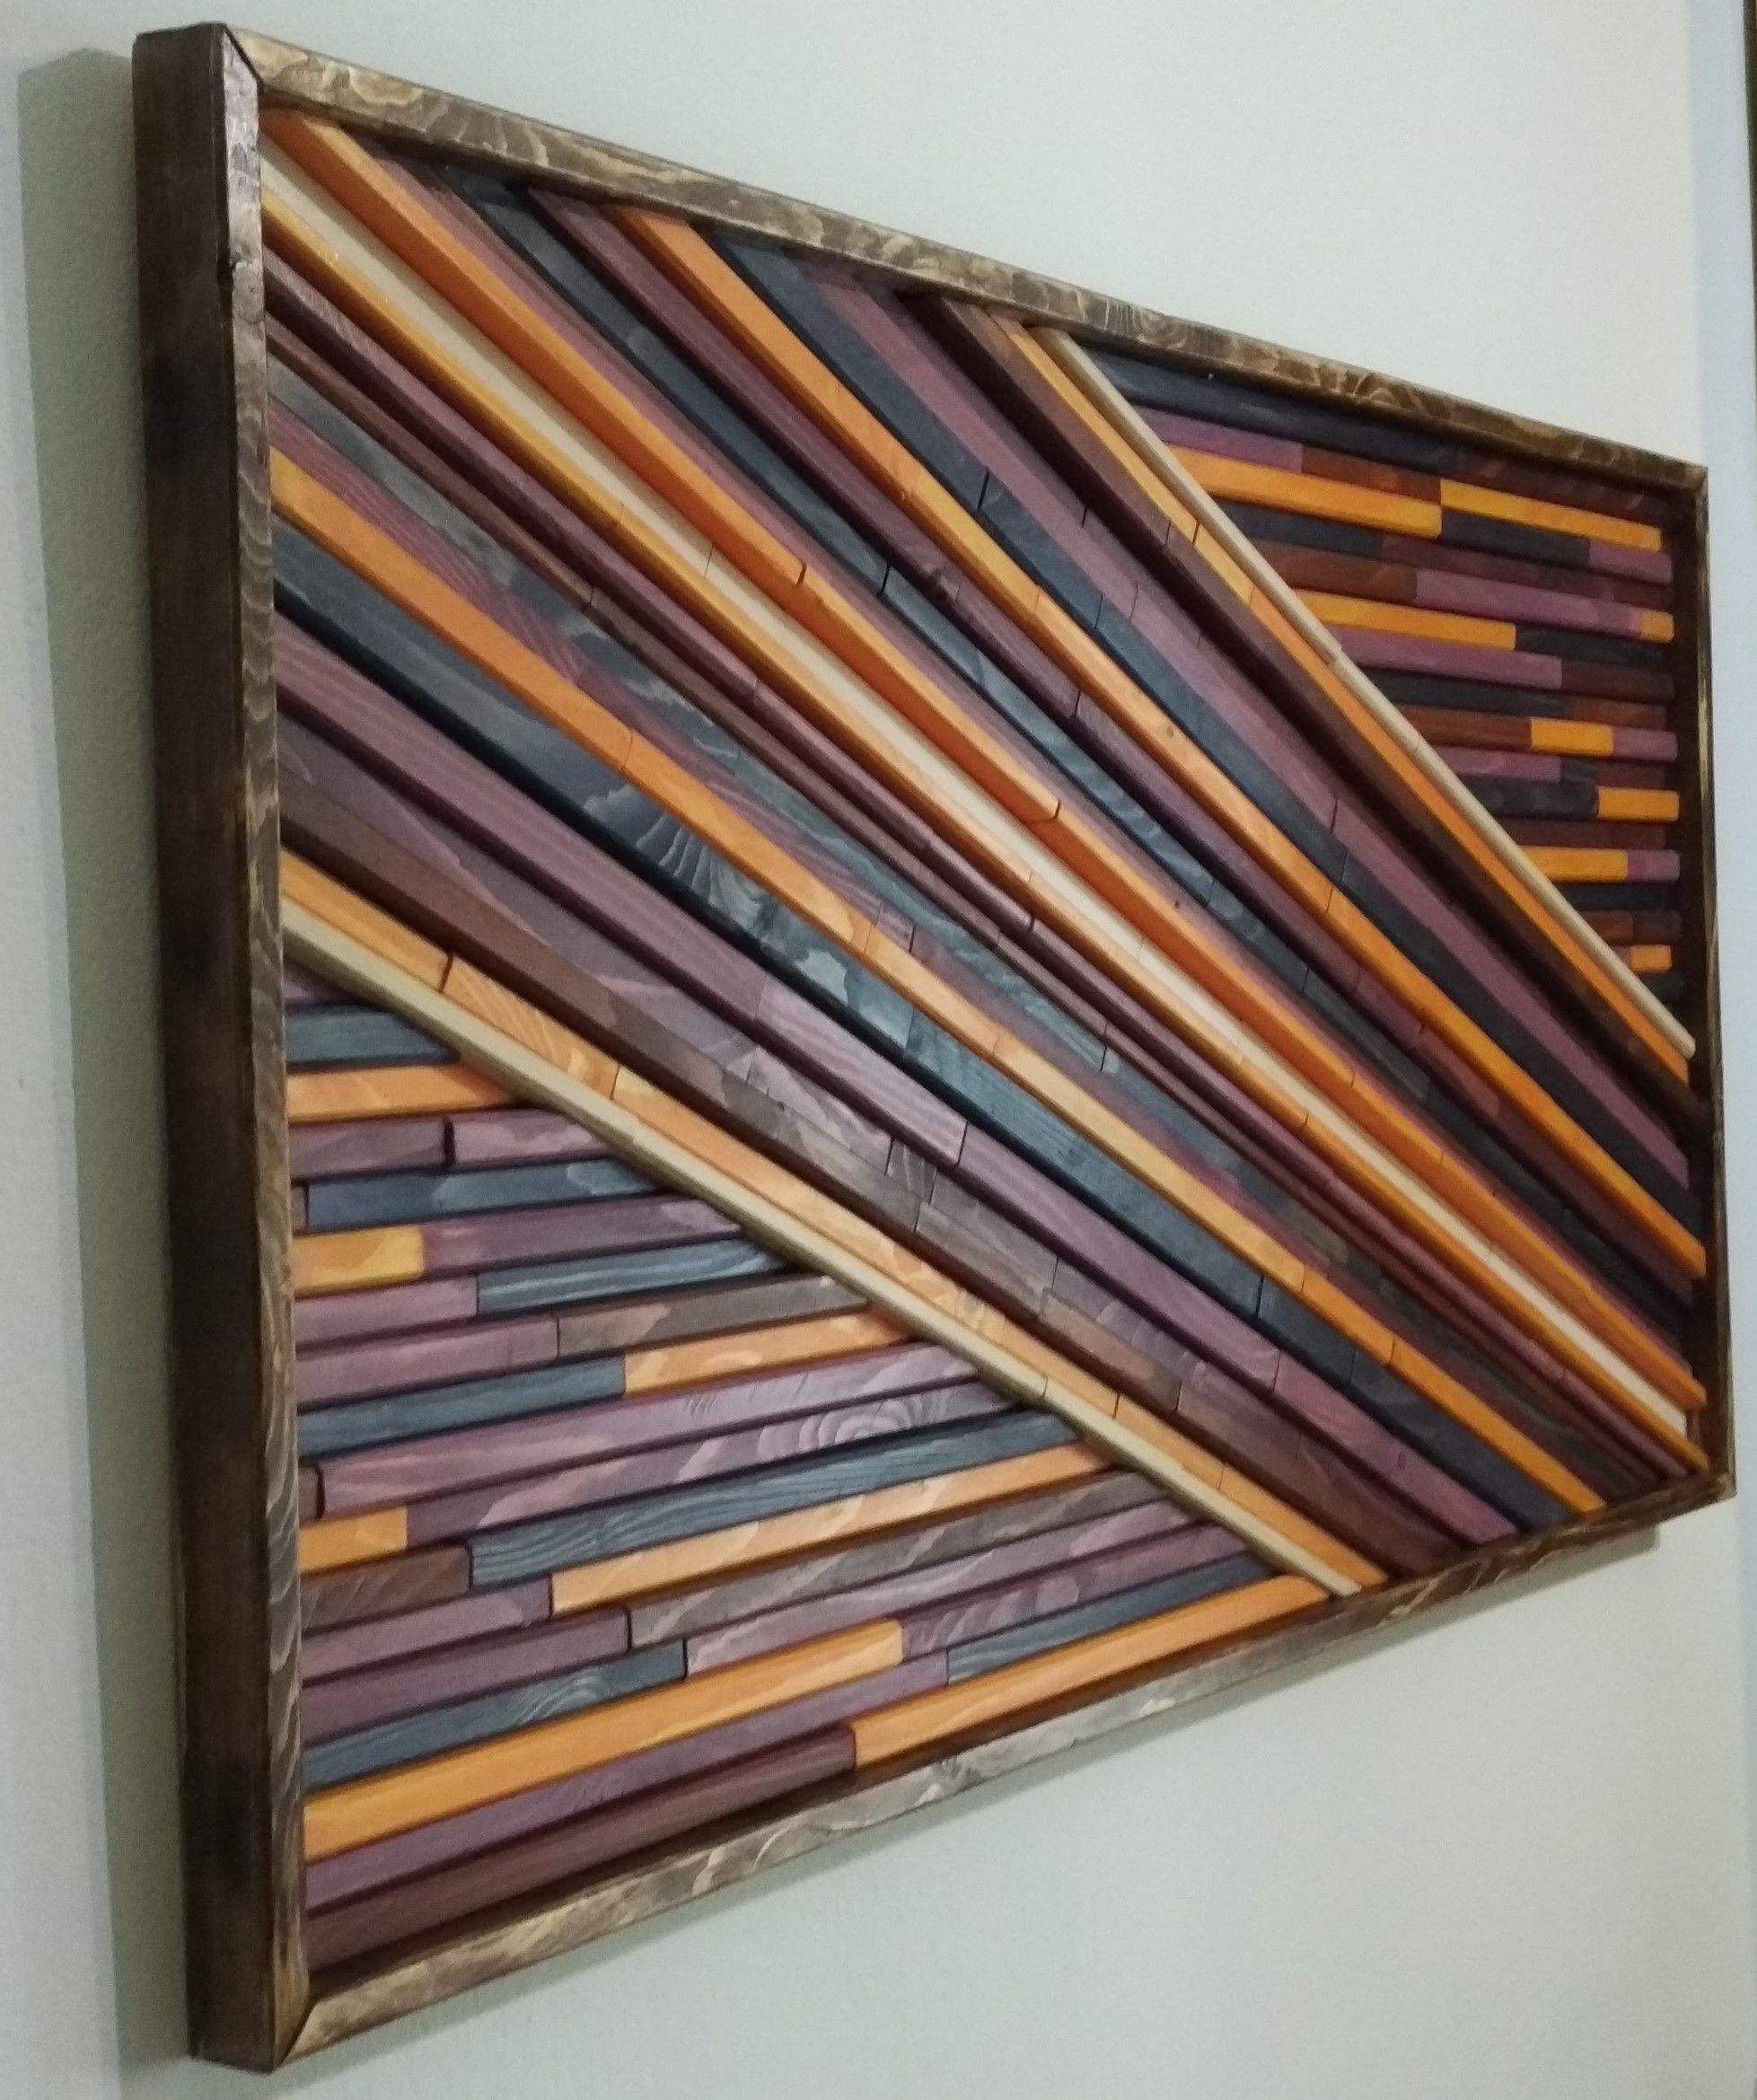 3d Wooden Picture Angle Style Candy Wall Art Wooden Wall Art Wooden Home Decor Buy 3d Wooden Pictur Reclaimed Wood Wall Art Wooden Wall Art Wood Art